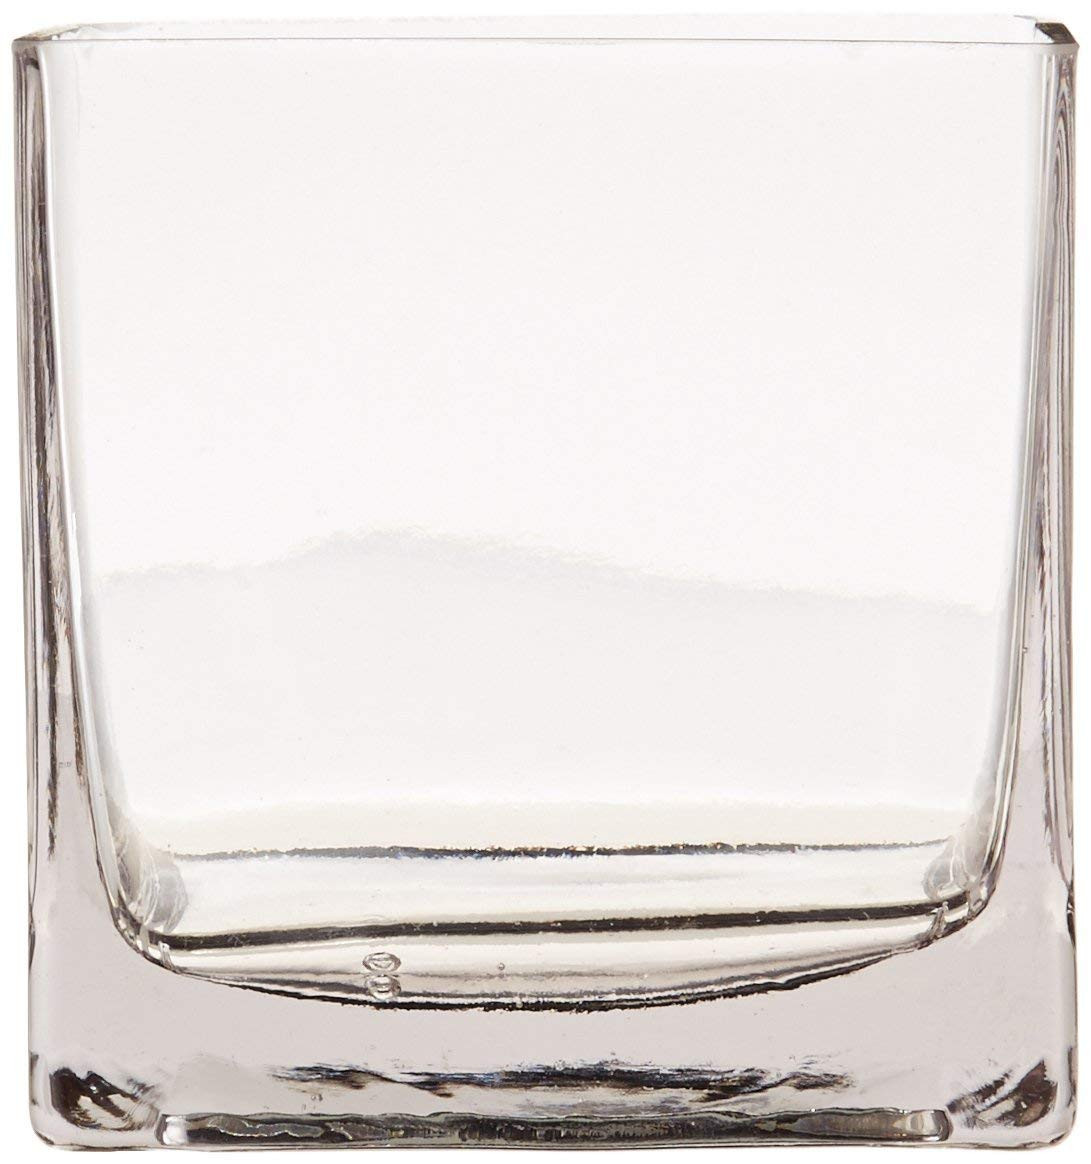 flat fish bowl vase of buy cys excel 12pc clear square glass vase cube 5 inch 5 x 5 x 5 with buy cys excel 12pc clear square glass vase cube 5 inch 5 x 5 x 5 twelve vases online at low prices in india amazon in